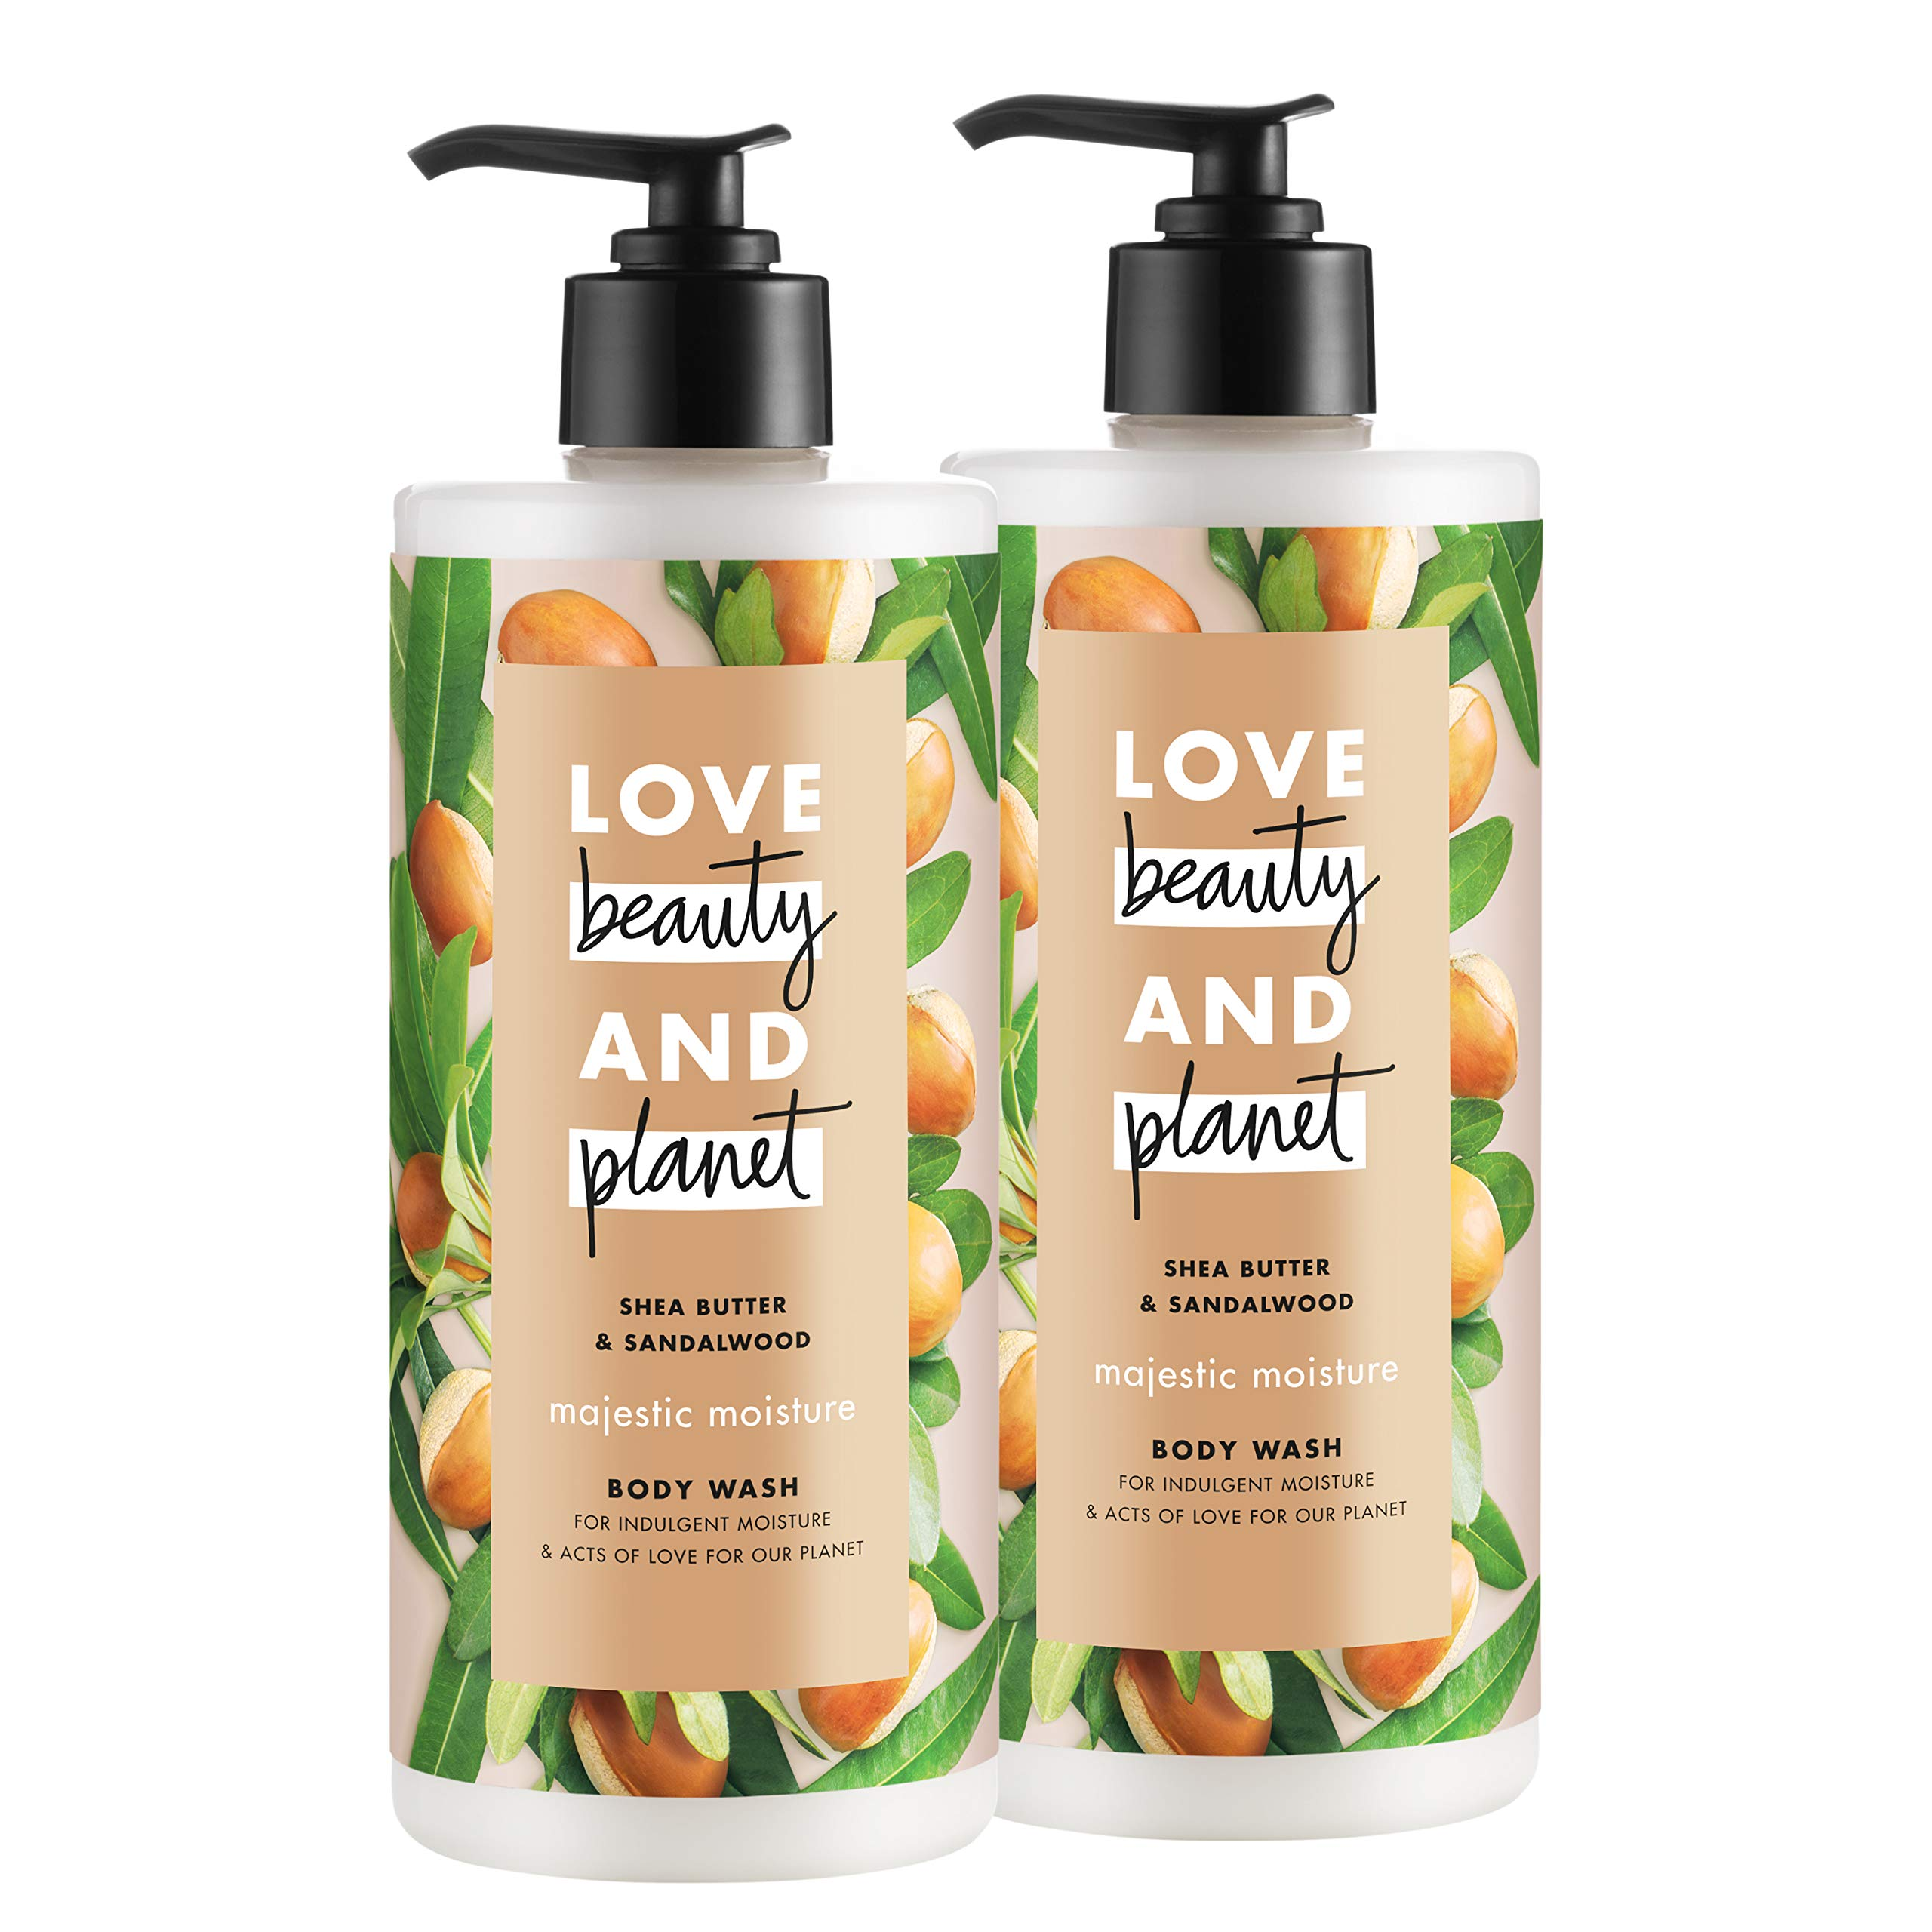 Love Beauty And Planet Majestic Moisture Body Wash Shea Butter & Sandalwood, Vegan, Paraben Free, and Sulfate Free, 16 oz, 2 count by LBP BODY WASH